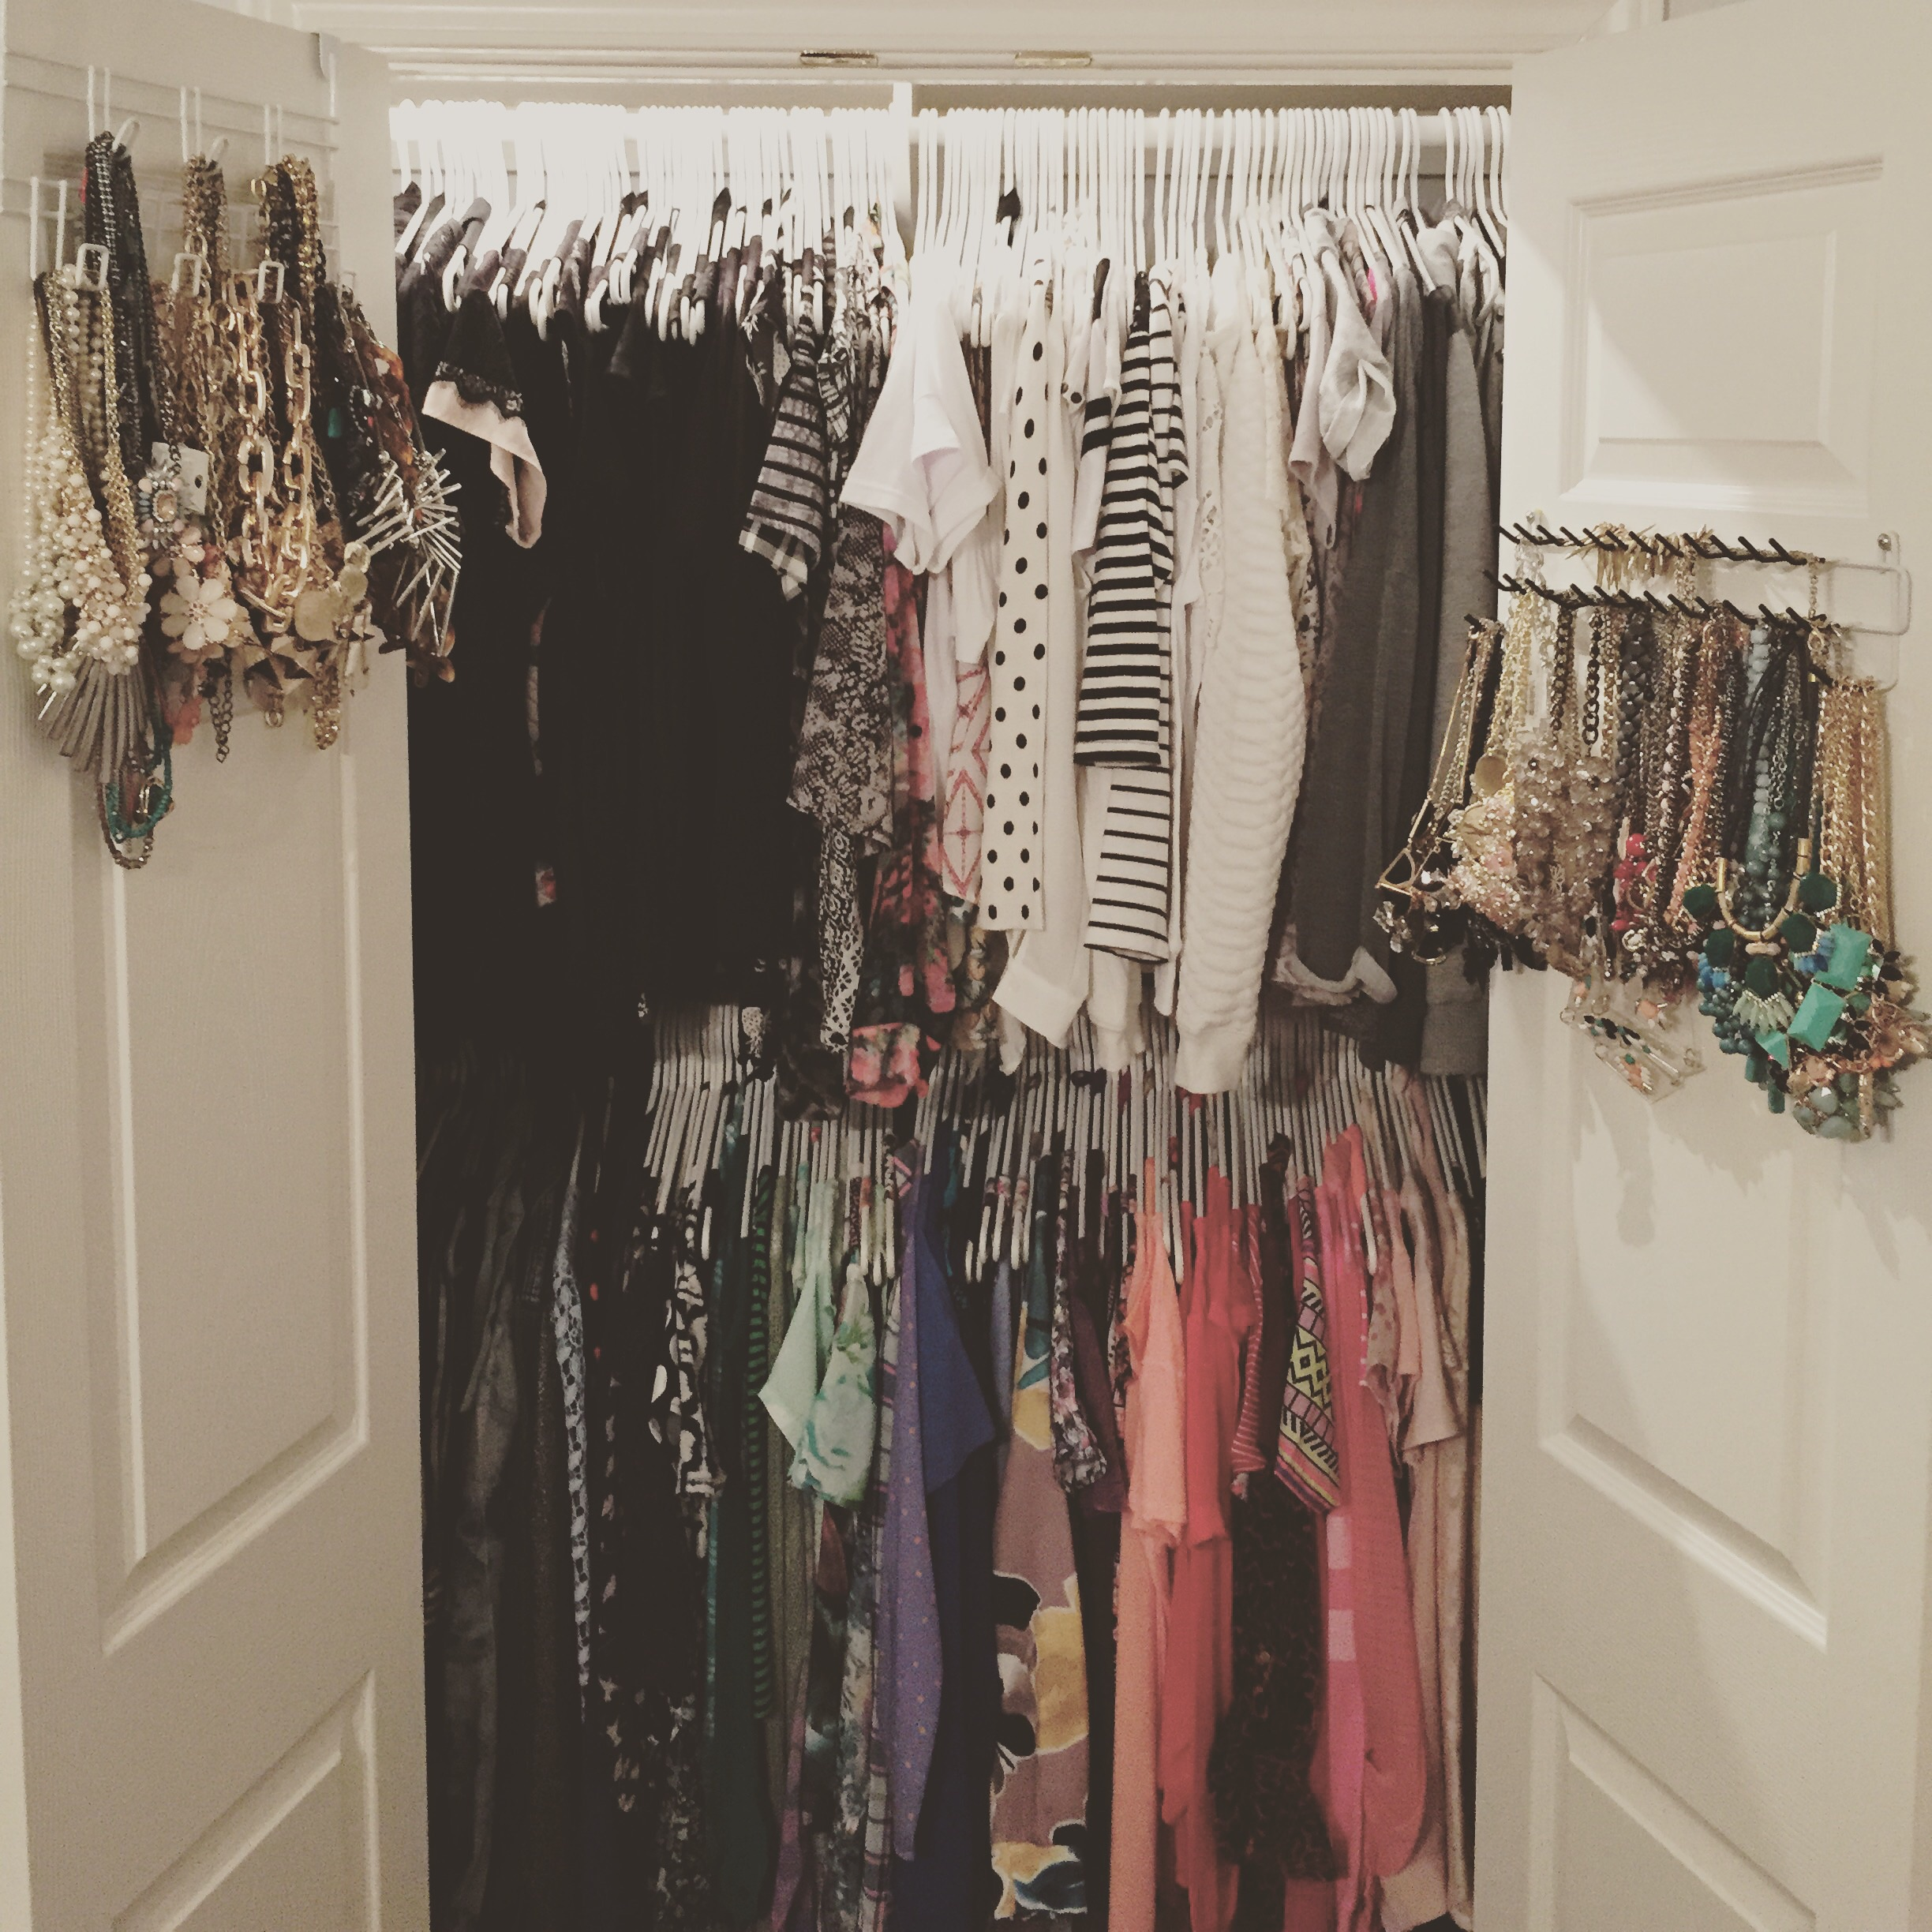 A PLACE FOR EVERYTHING & EVERYTHING IN ITS PLACE: CLOSET CLEAN-OUT 101